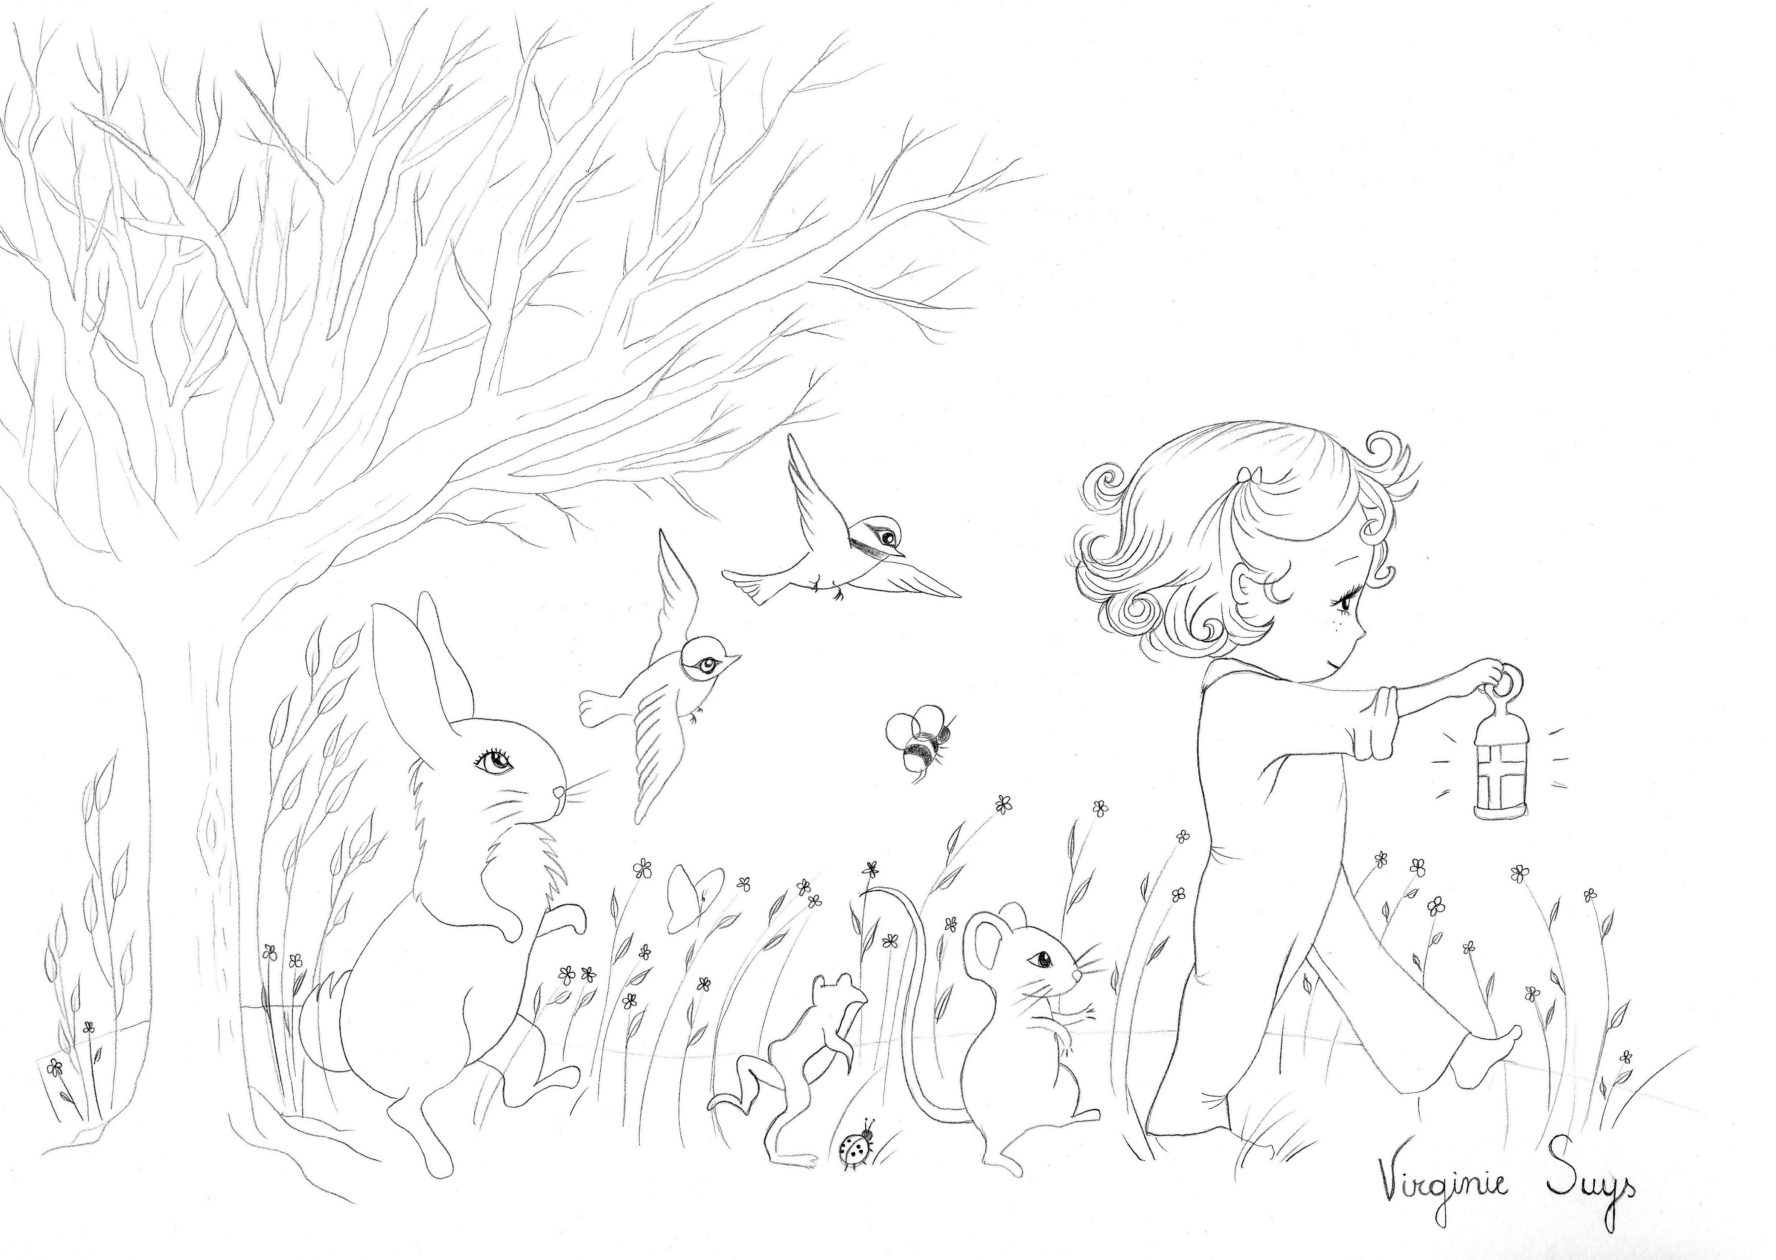 Virginie Suys Forest parade in black & white illustration